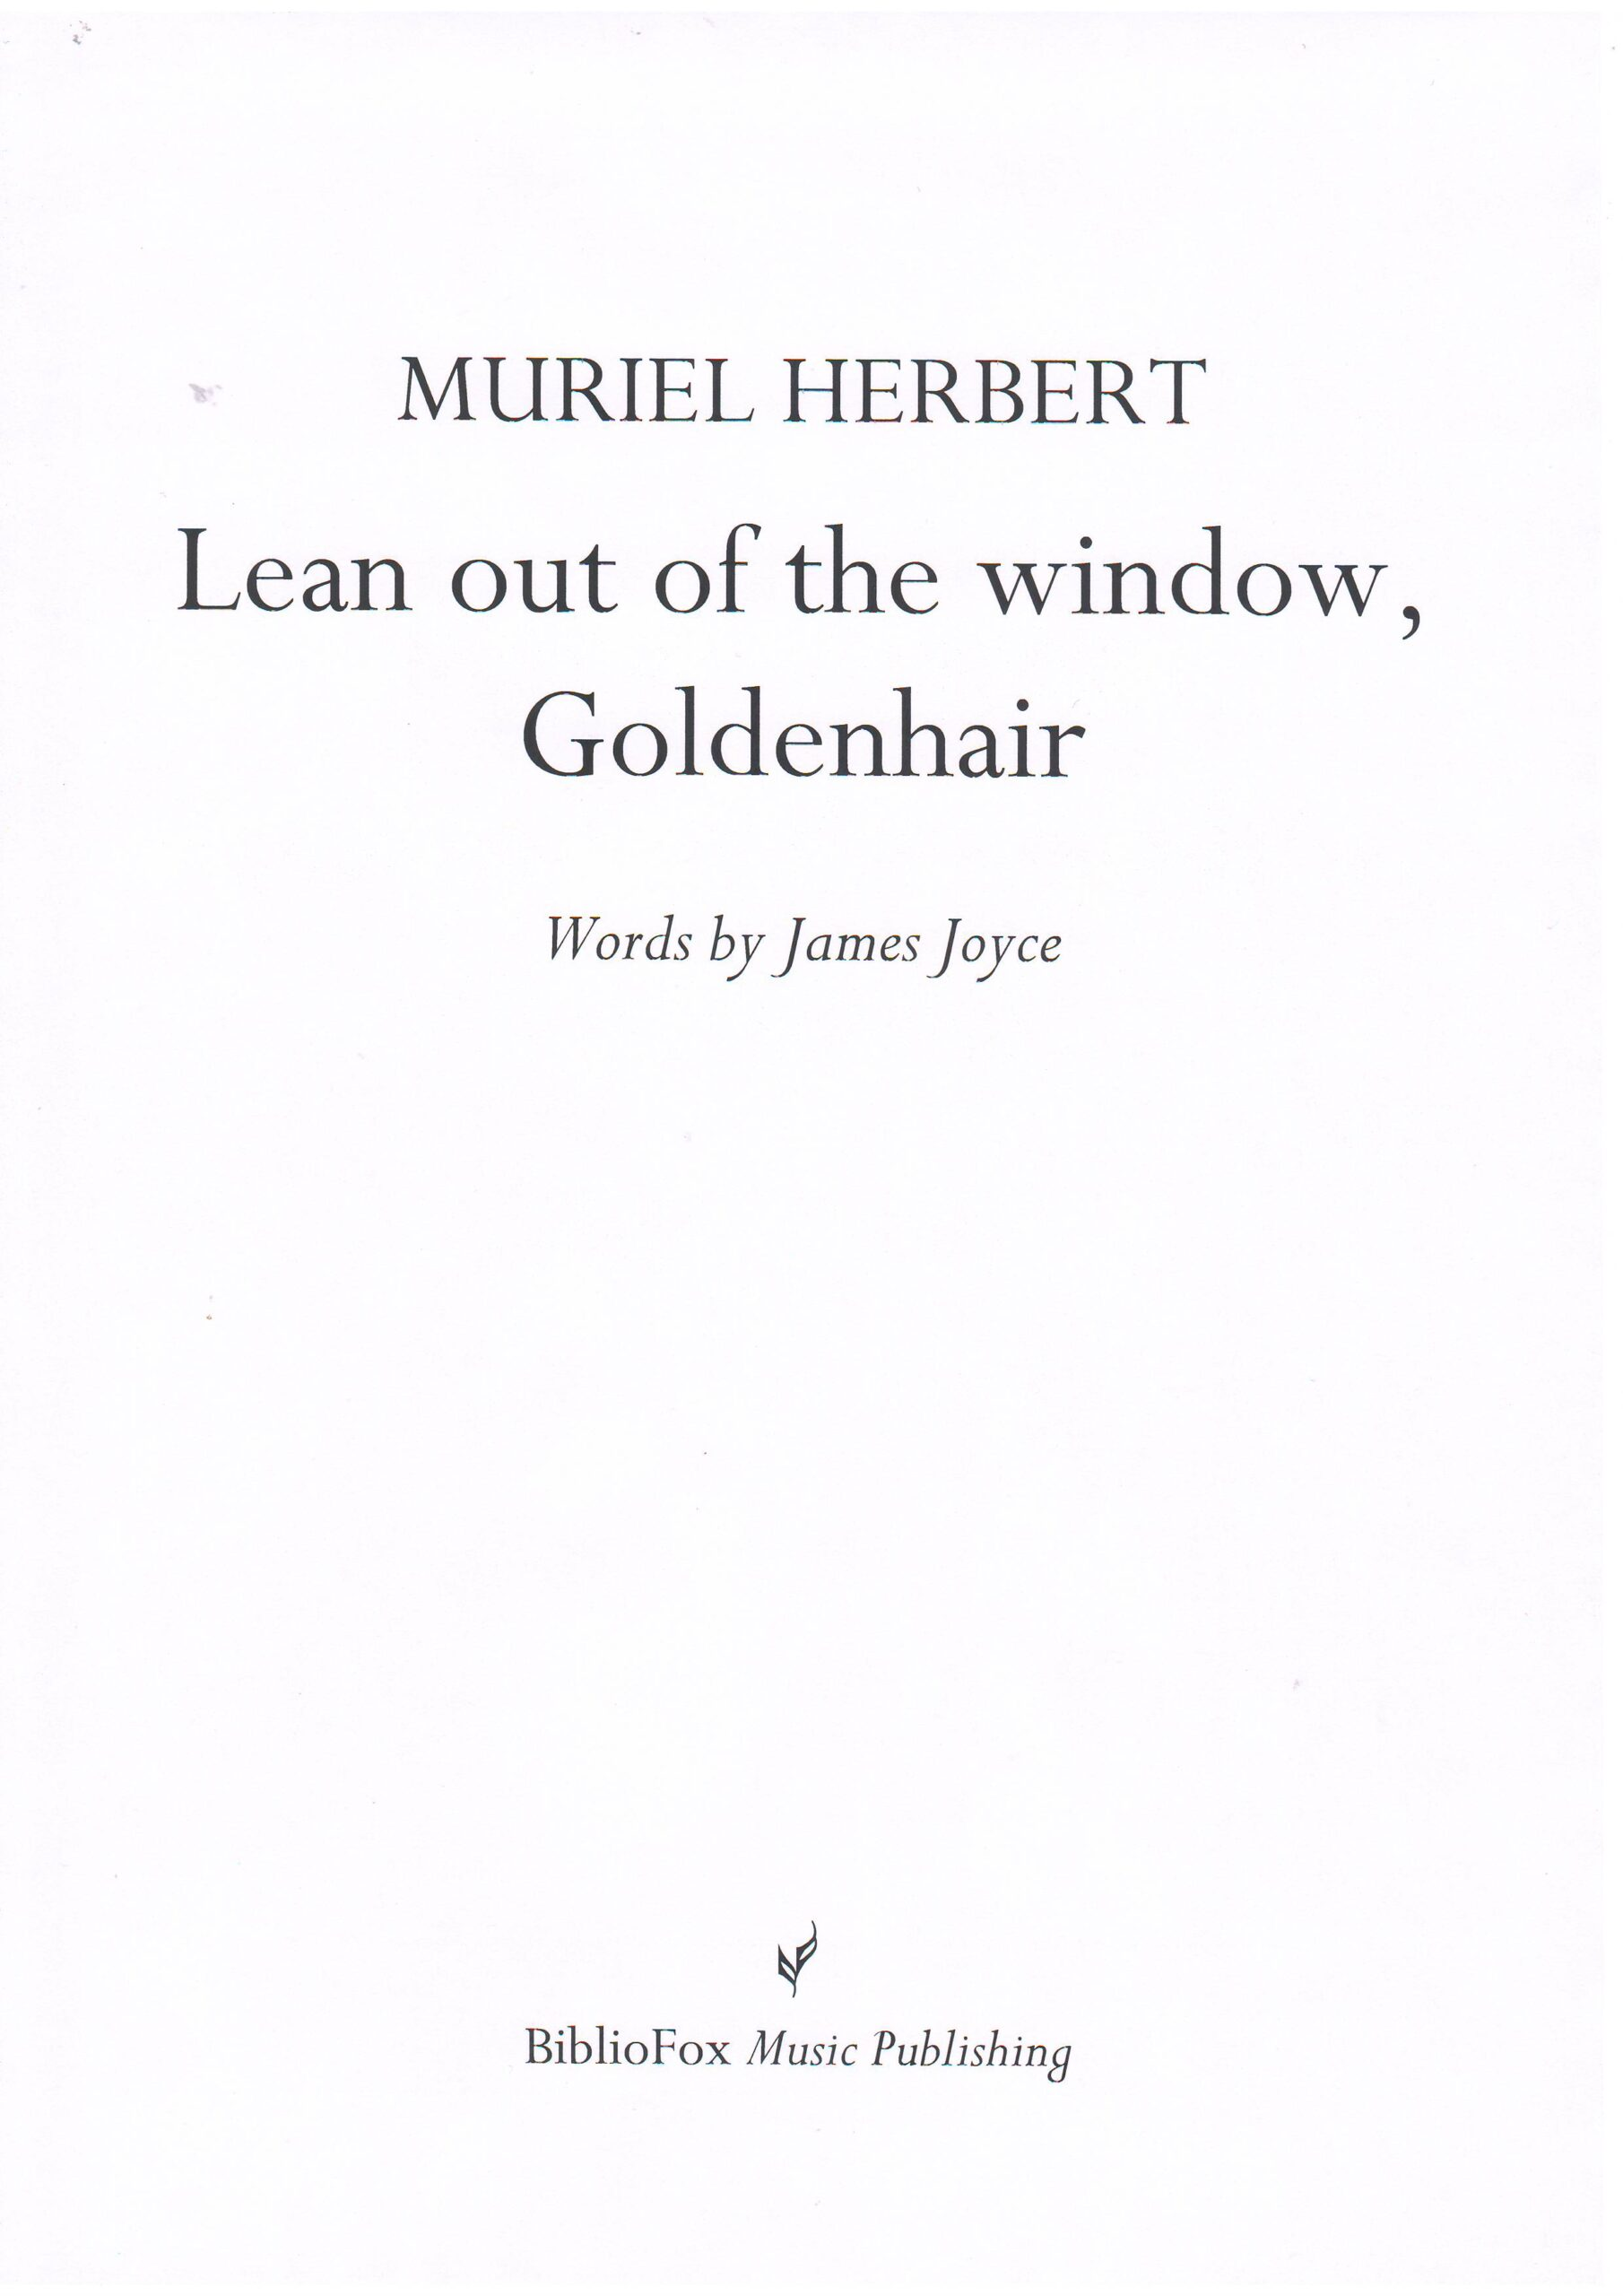 Cover page of Herbert Lean out of the window